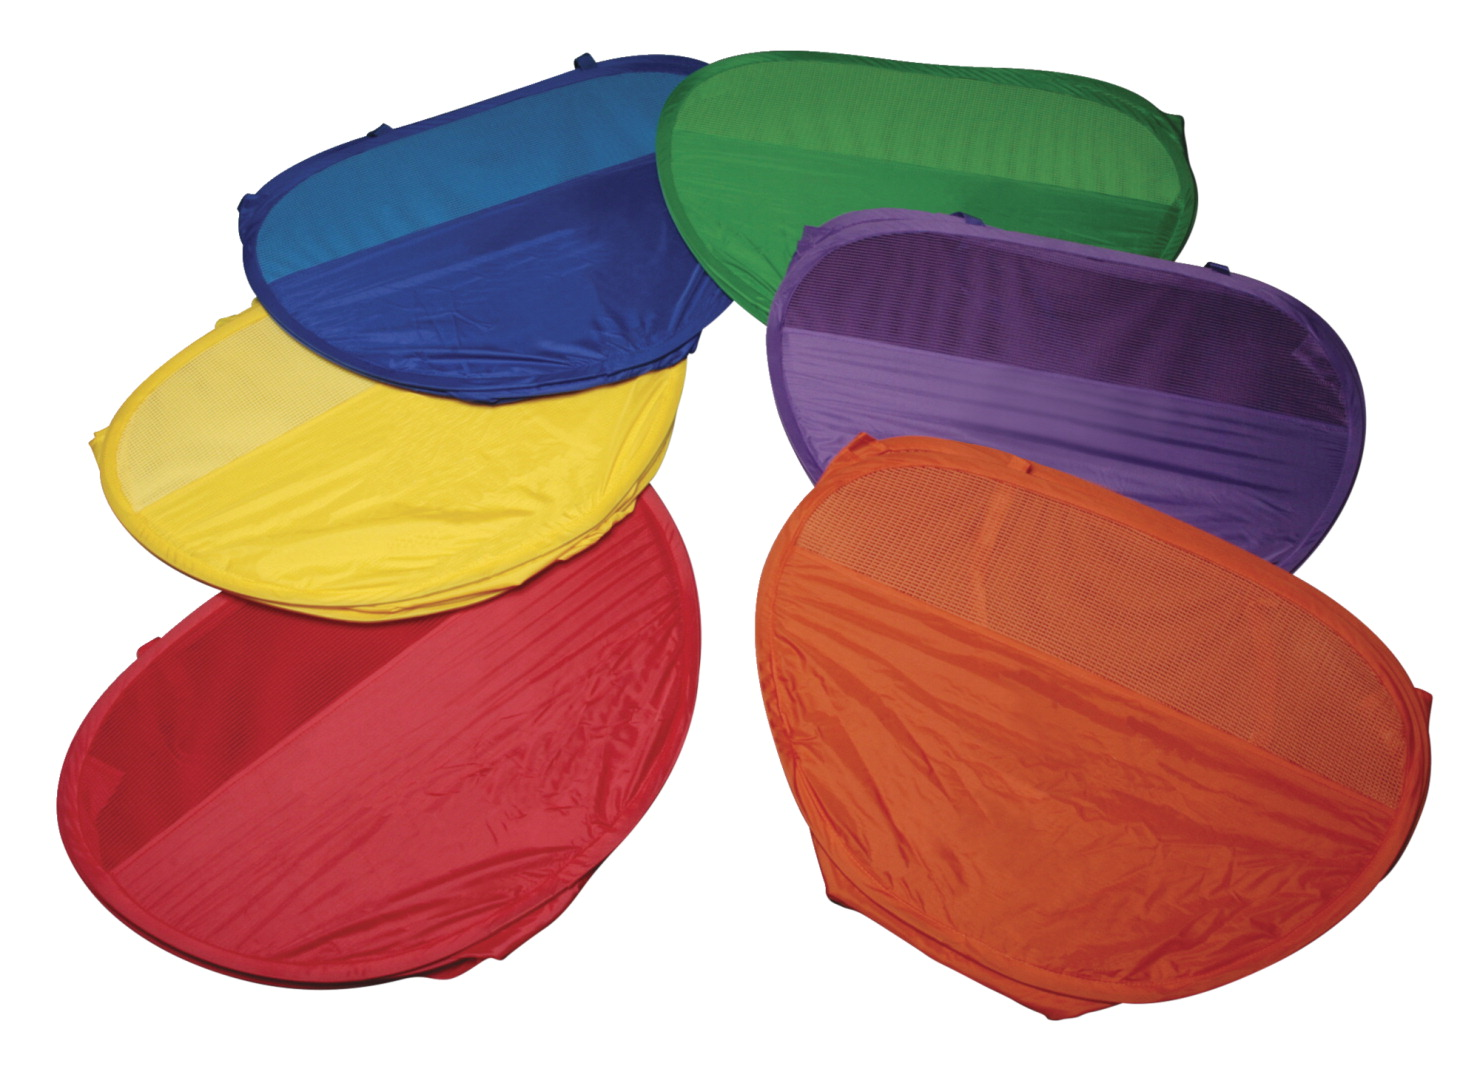 Sportime Tote-N-Target Fold Up Basket Set, 14 X 21 X 21 in, Assorted Color, Set of 6